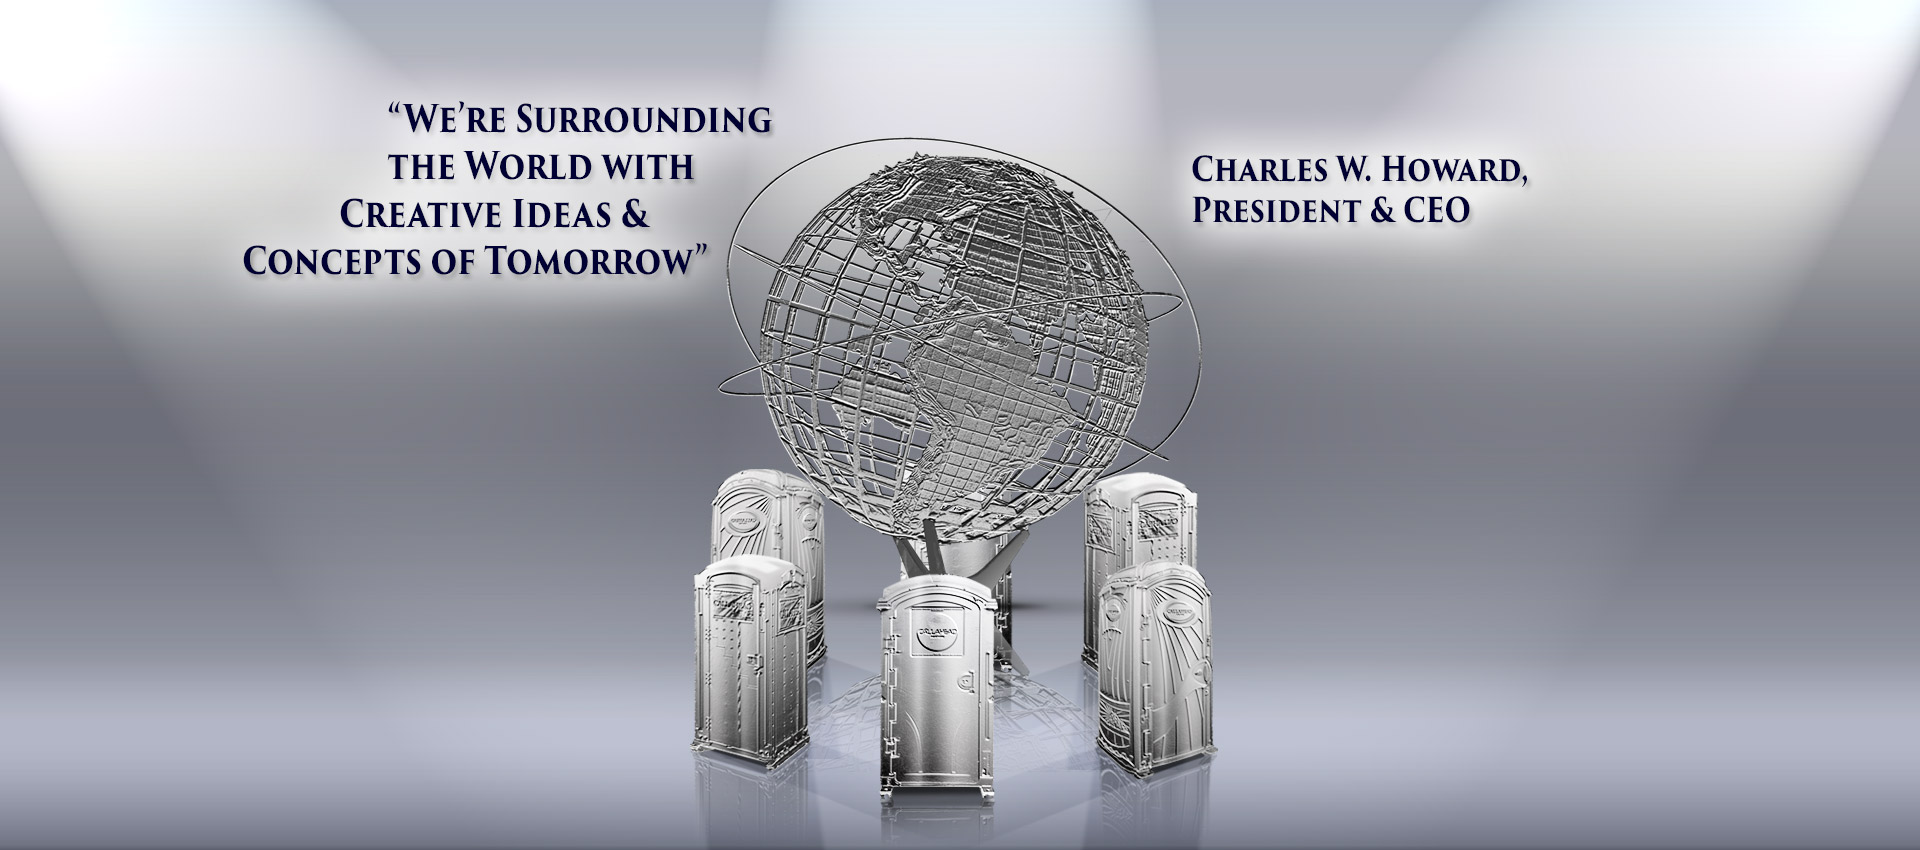 """We are surrounding the world with creative ideas & concepts of tomorrow"" - Charles W. Howard, President & CEO"